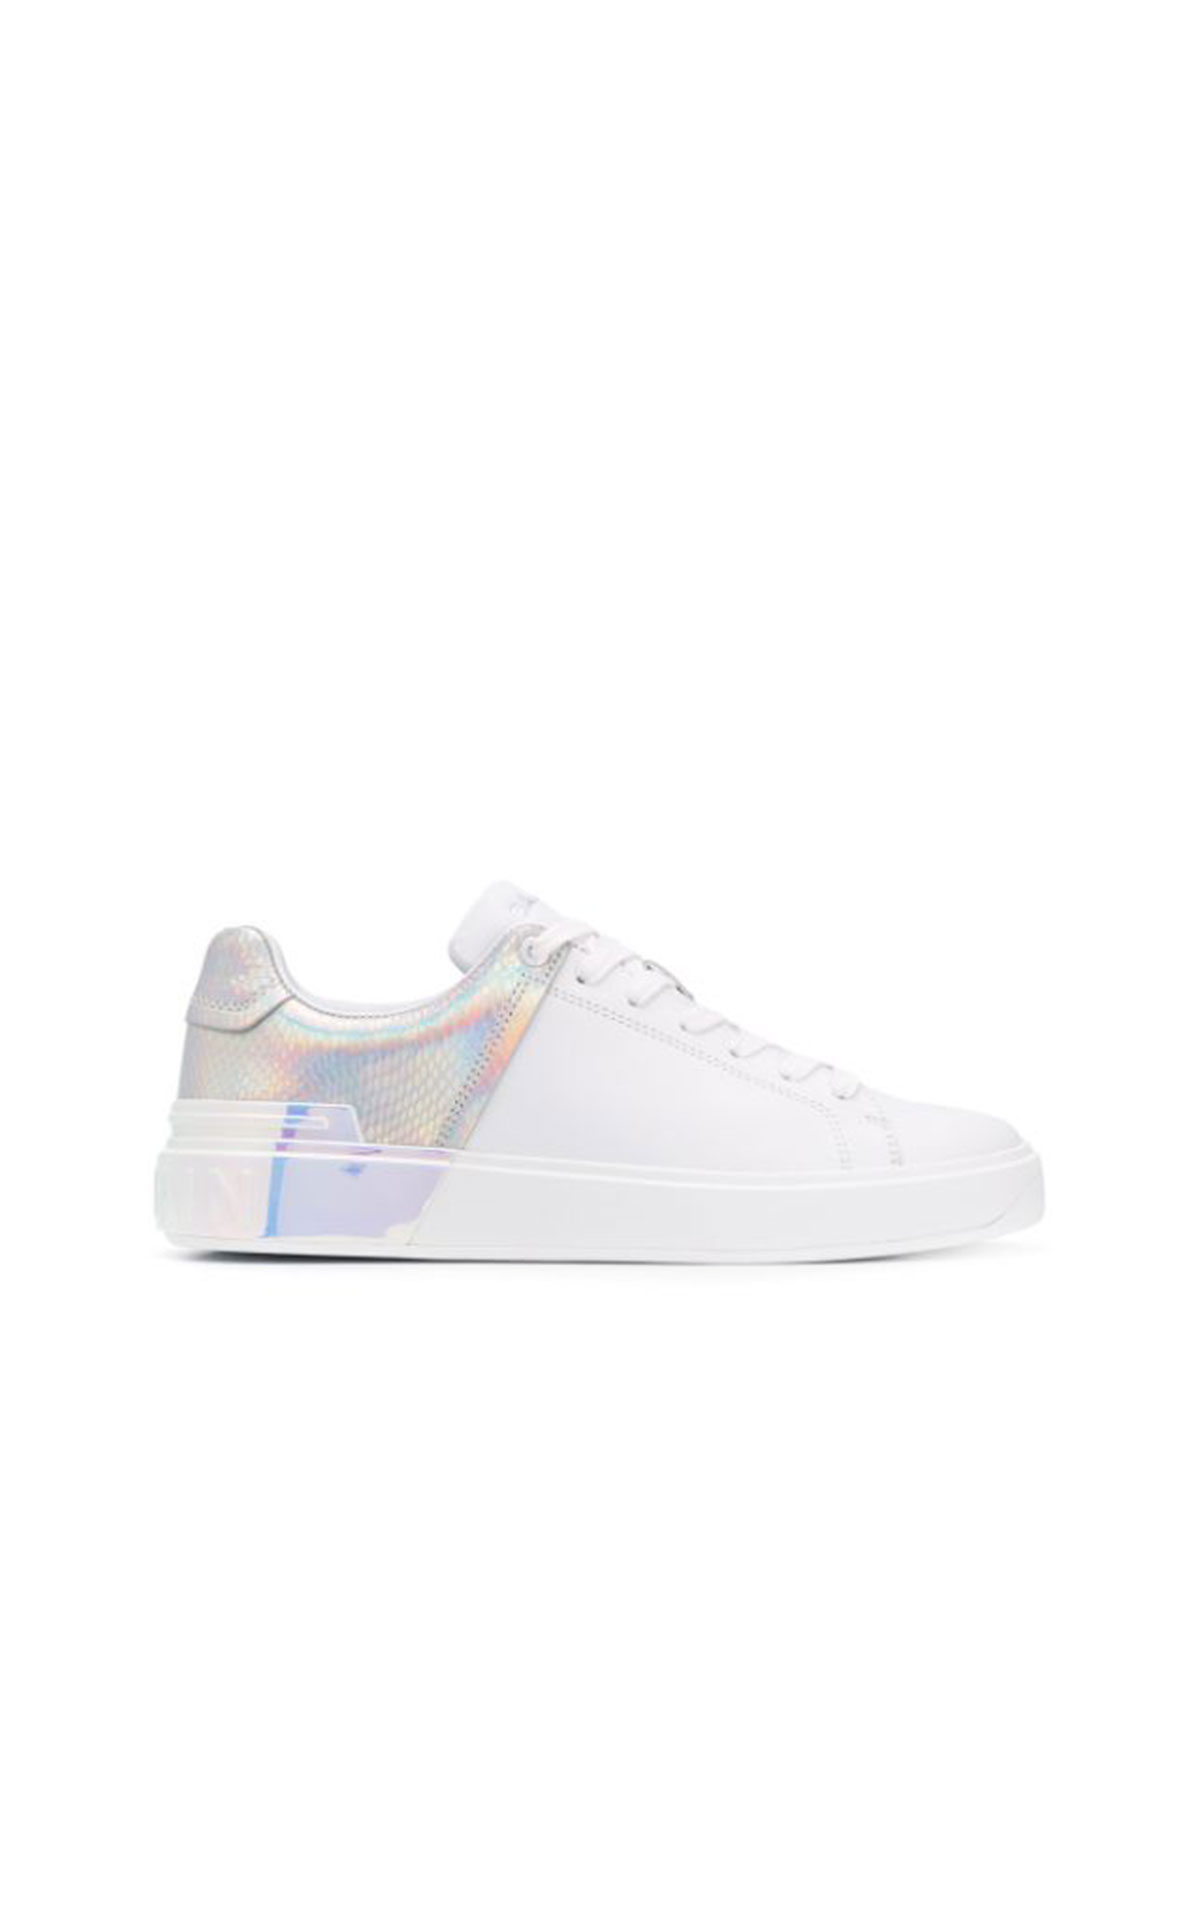 Balmain B-Court snakeskin-effect holographic sneaker from Bicester Village